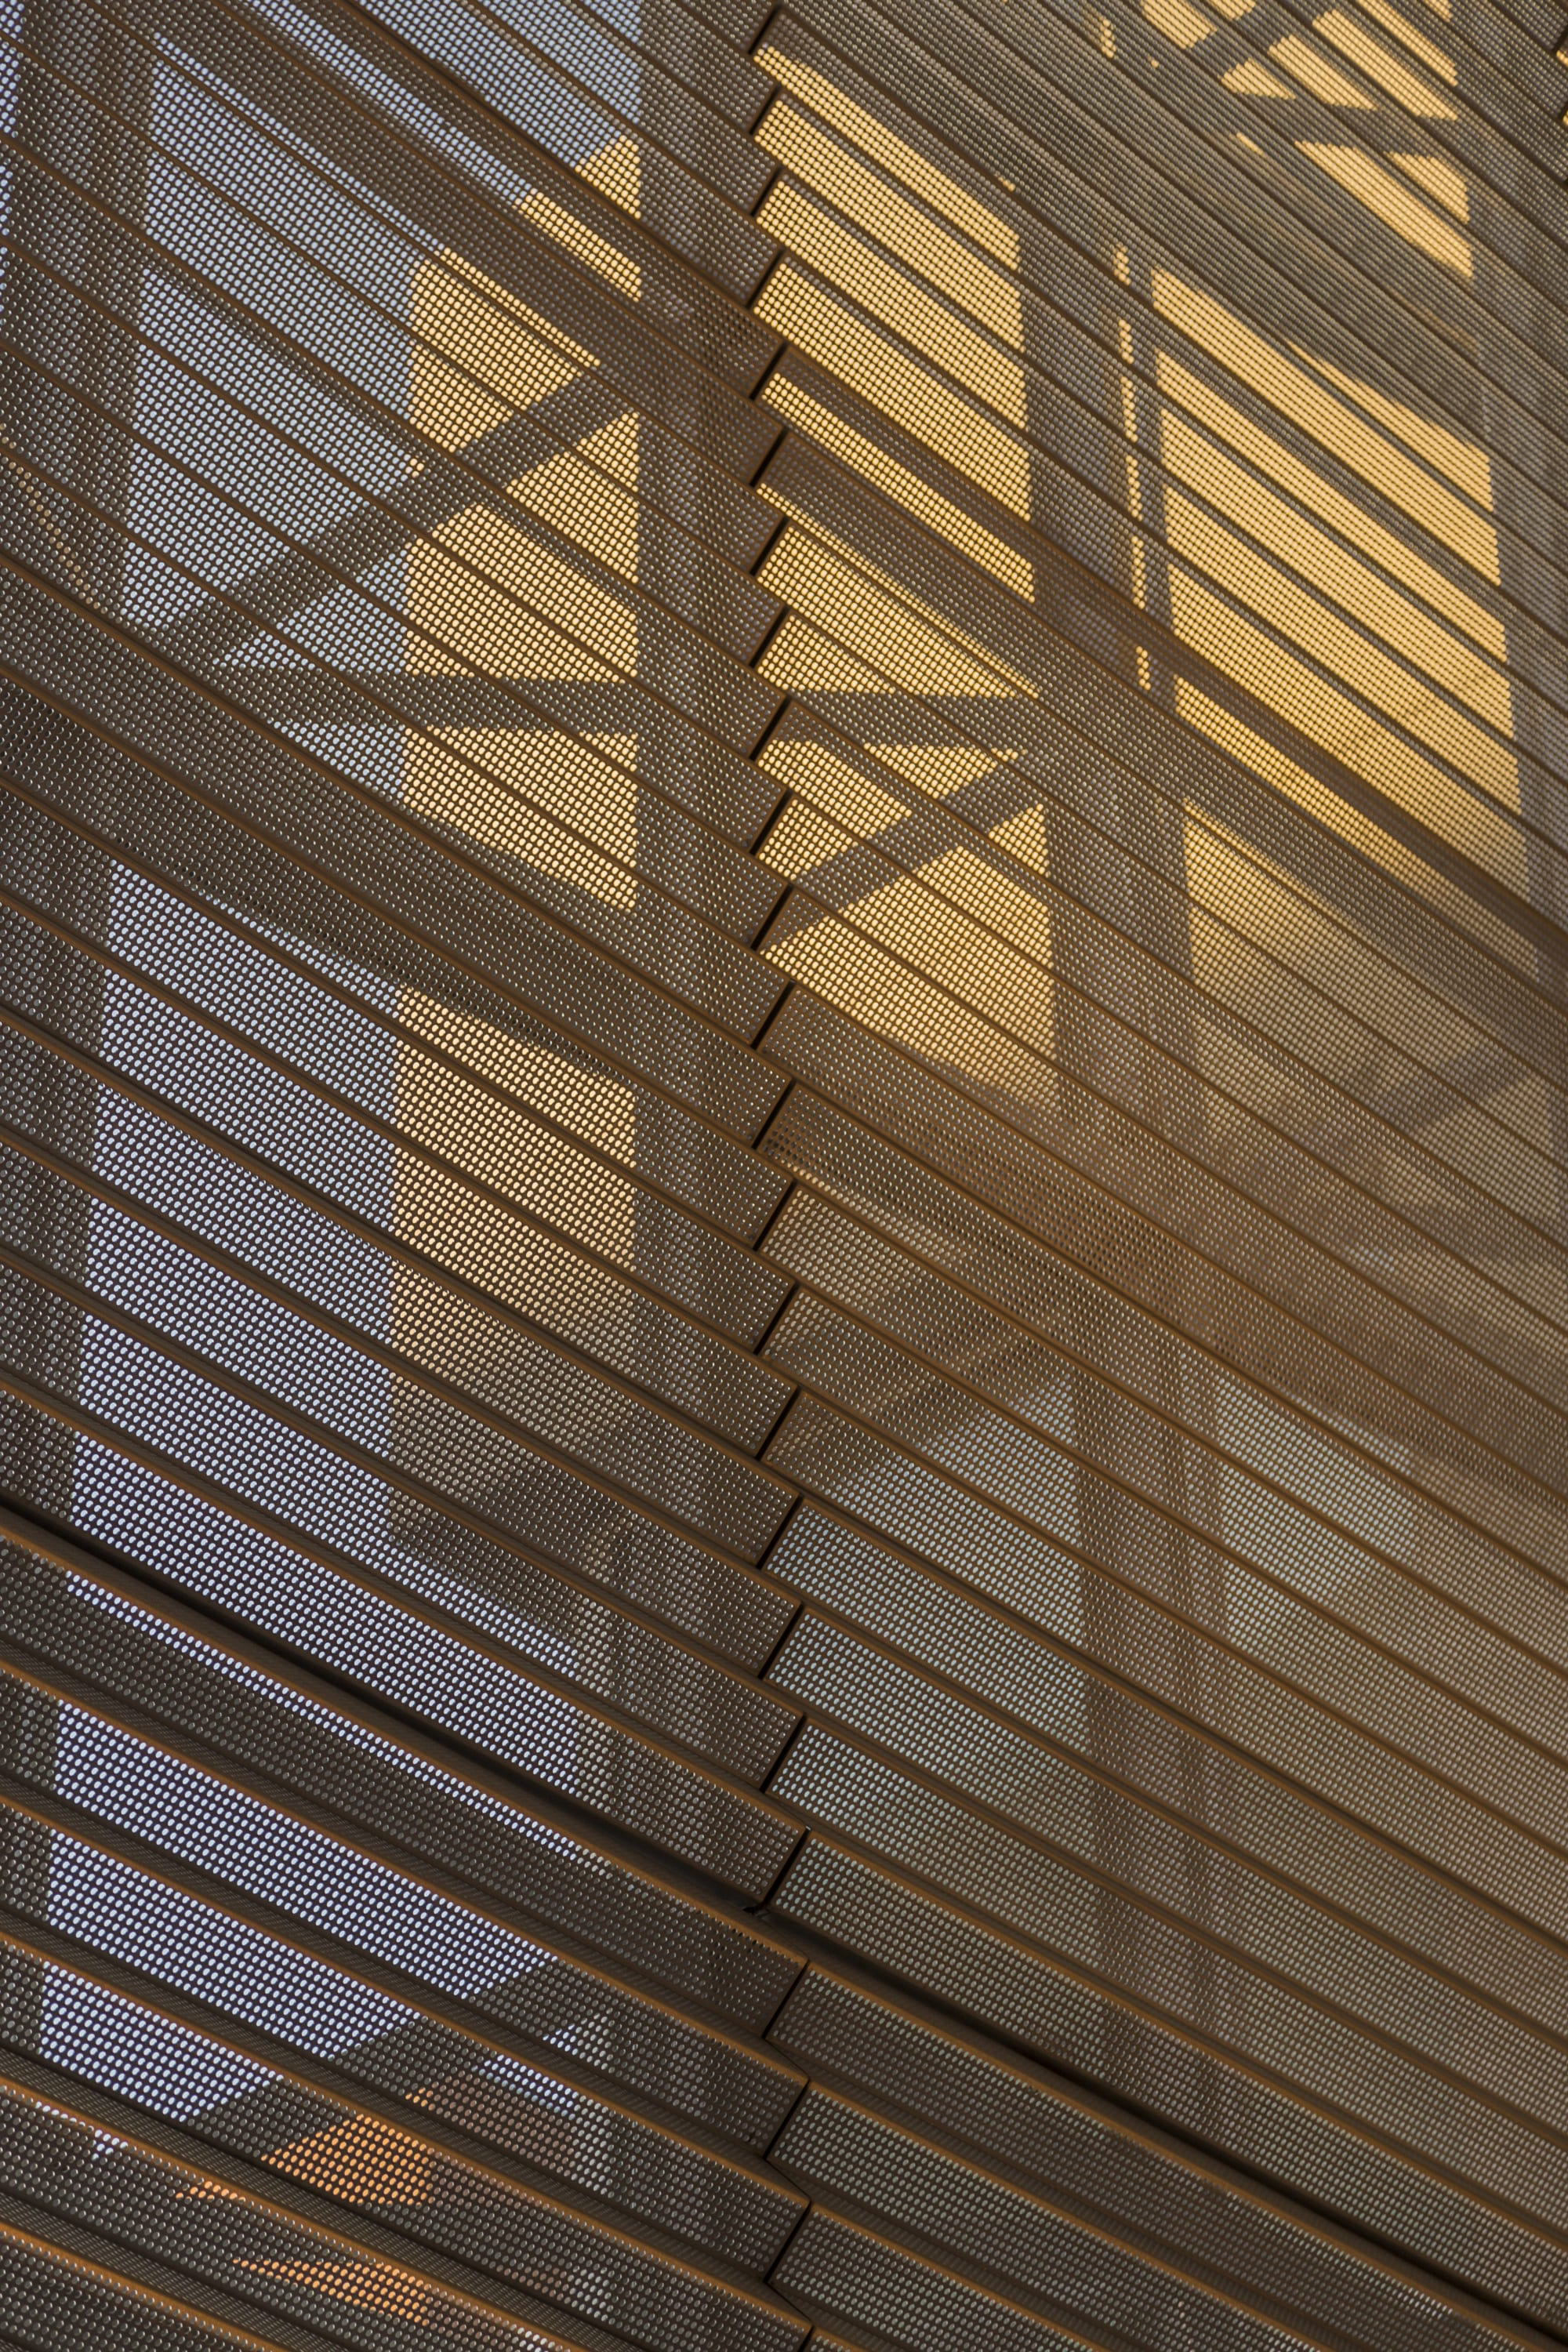 Detail of the perforated metal angle panels